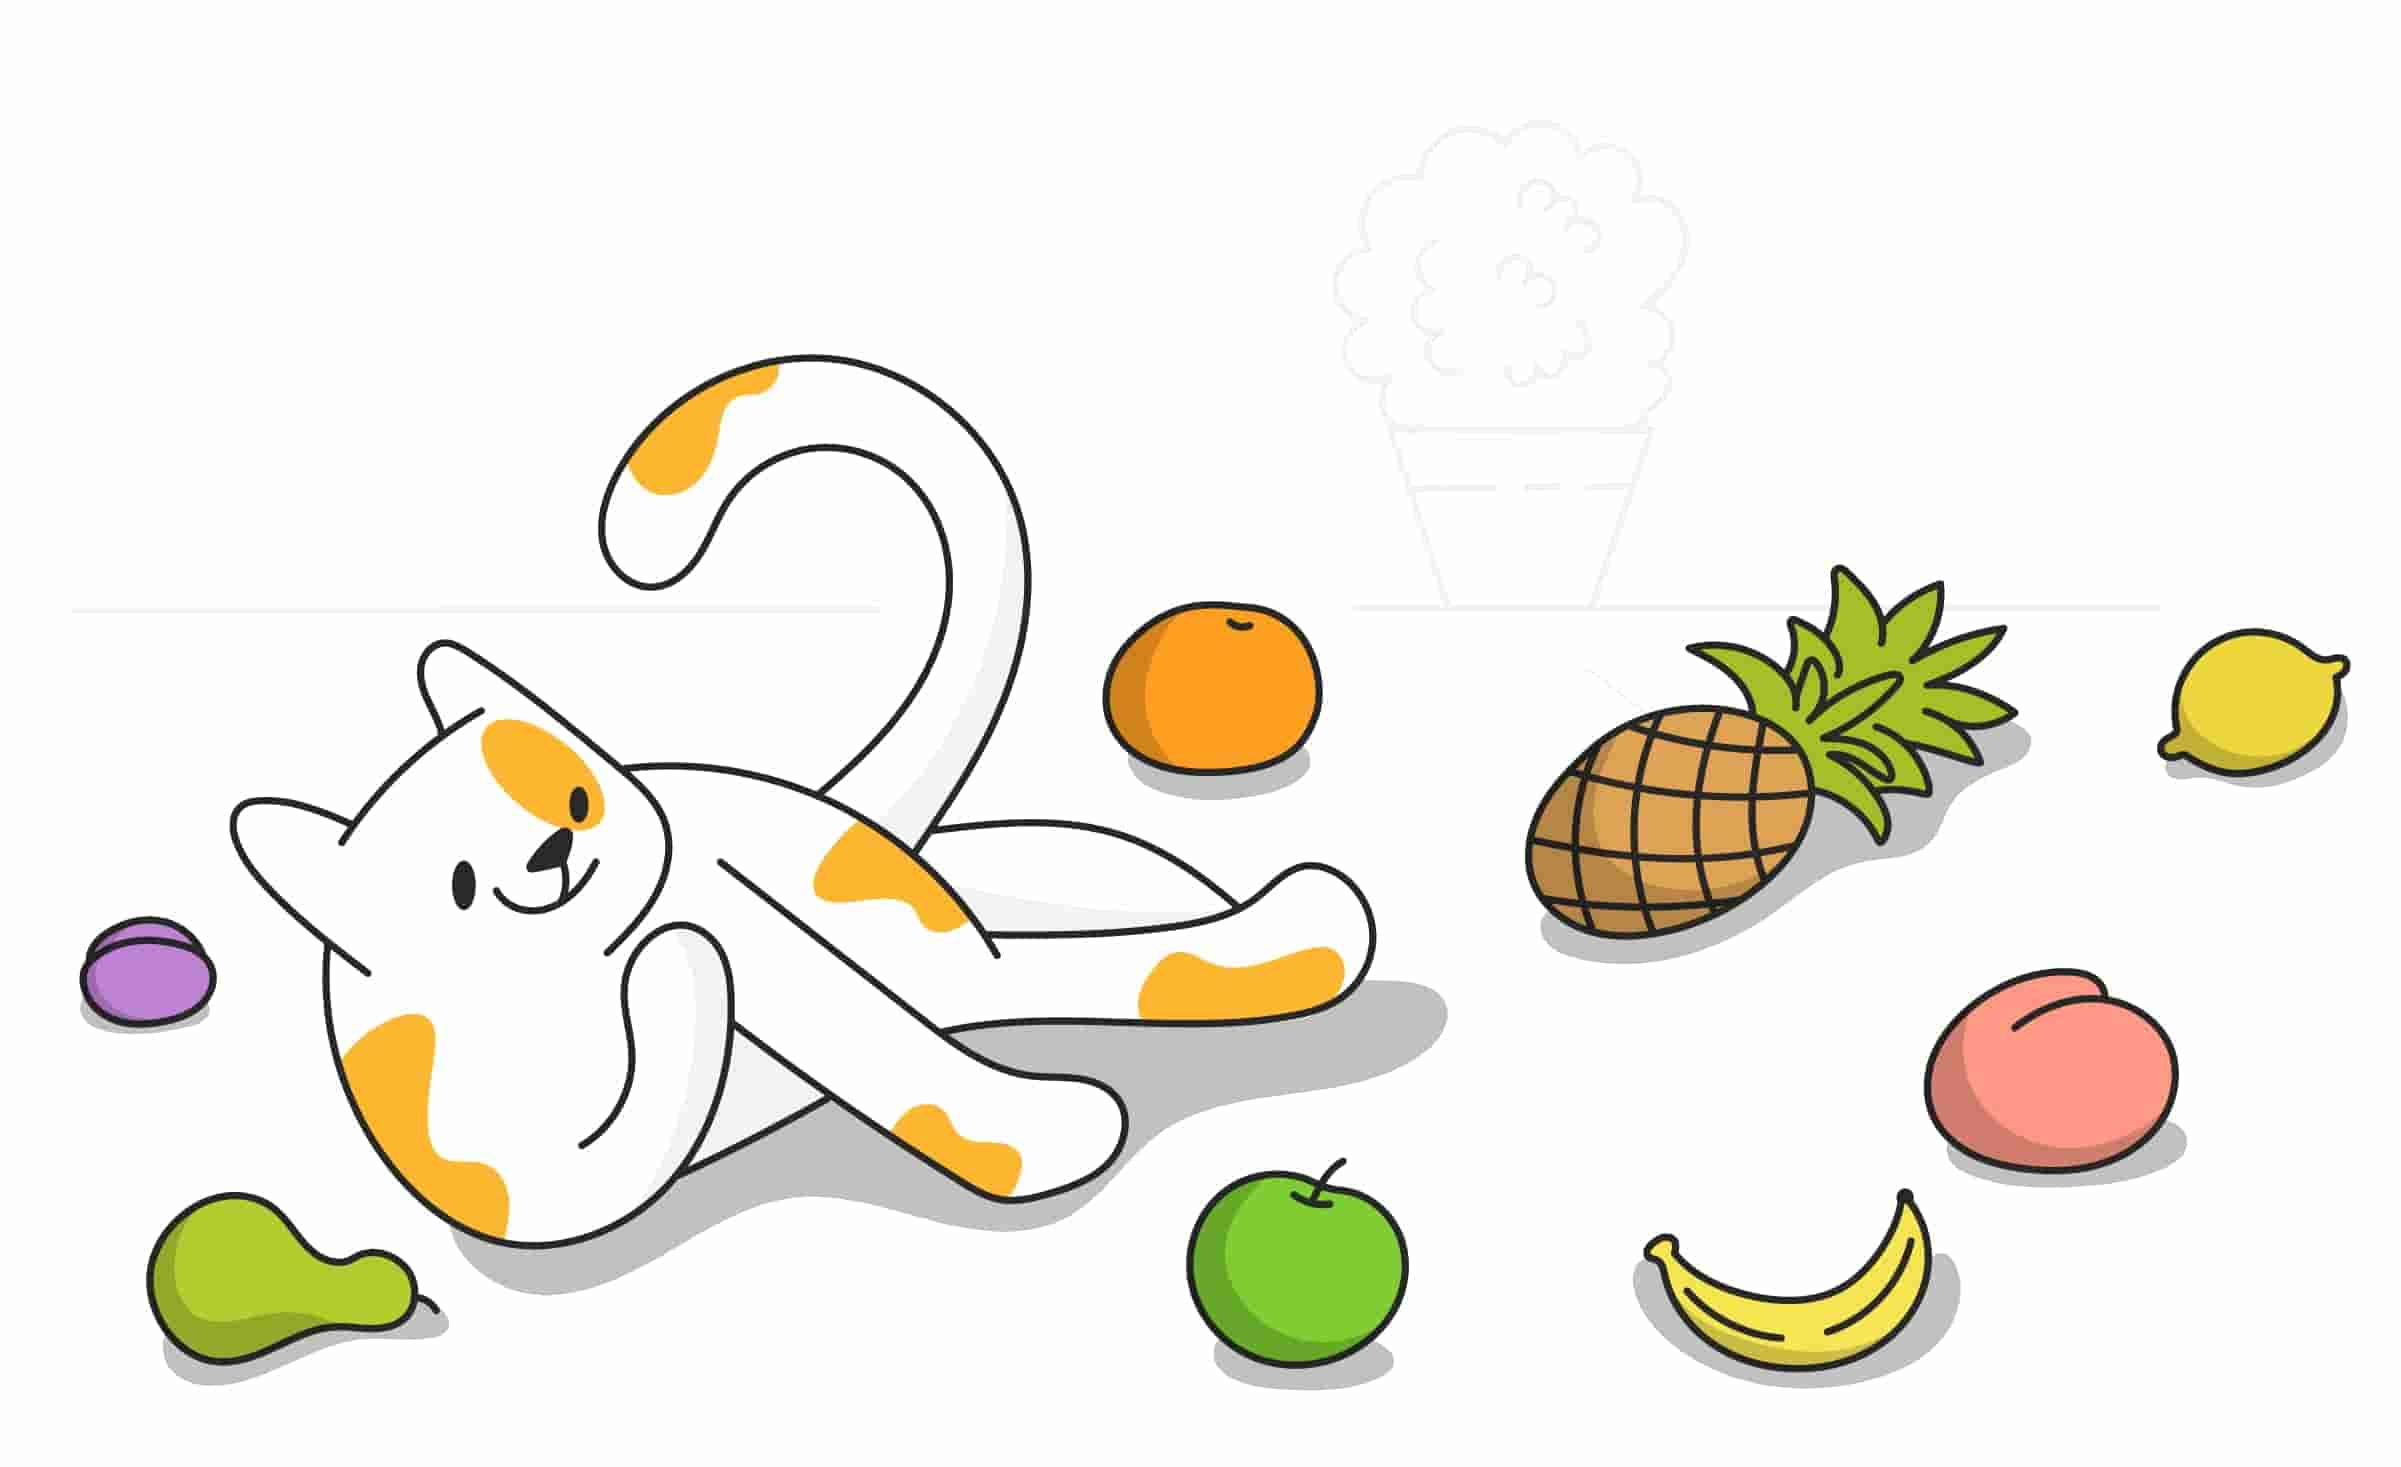 Can Cats Eat Fruits Like Apples, Bananas, or Grapes?